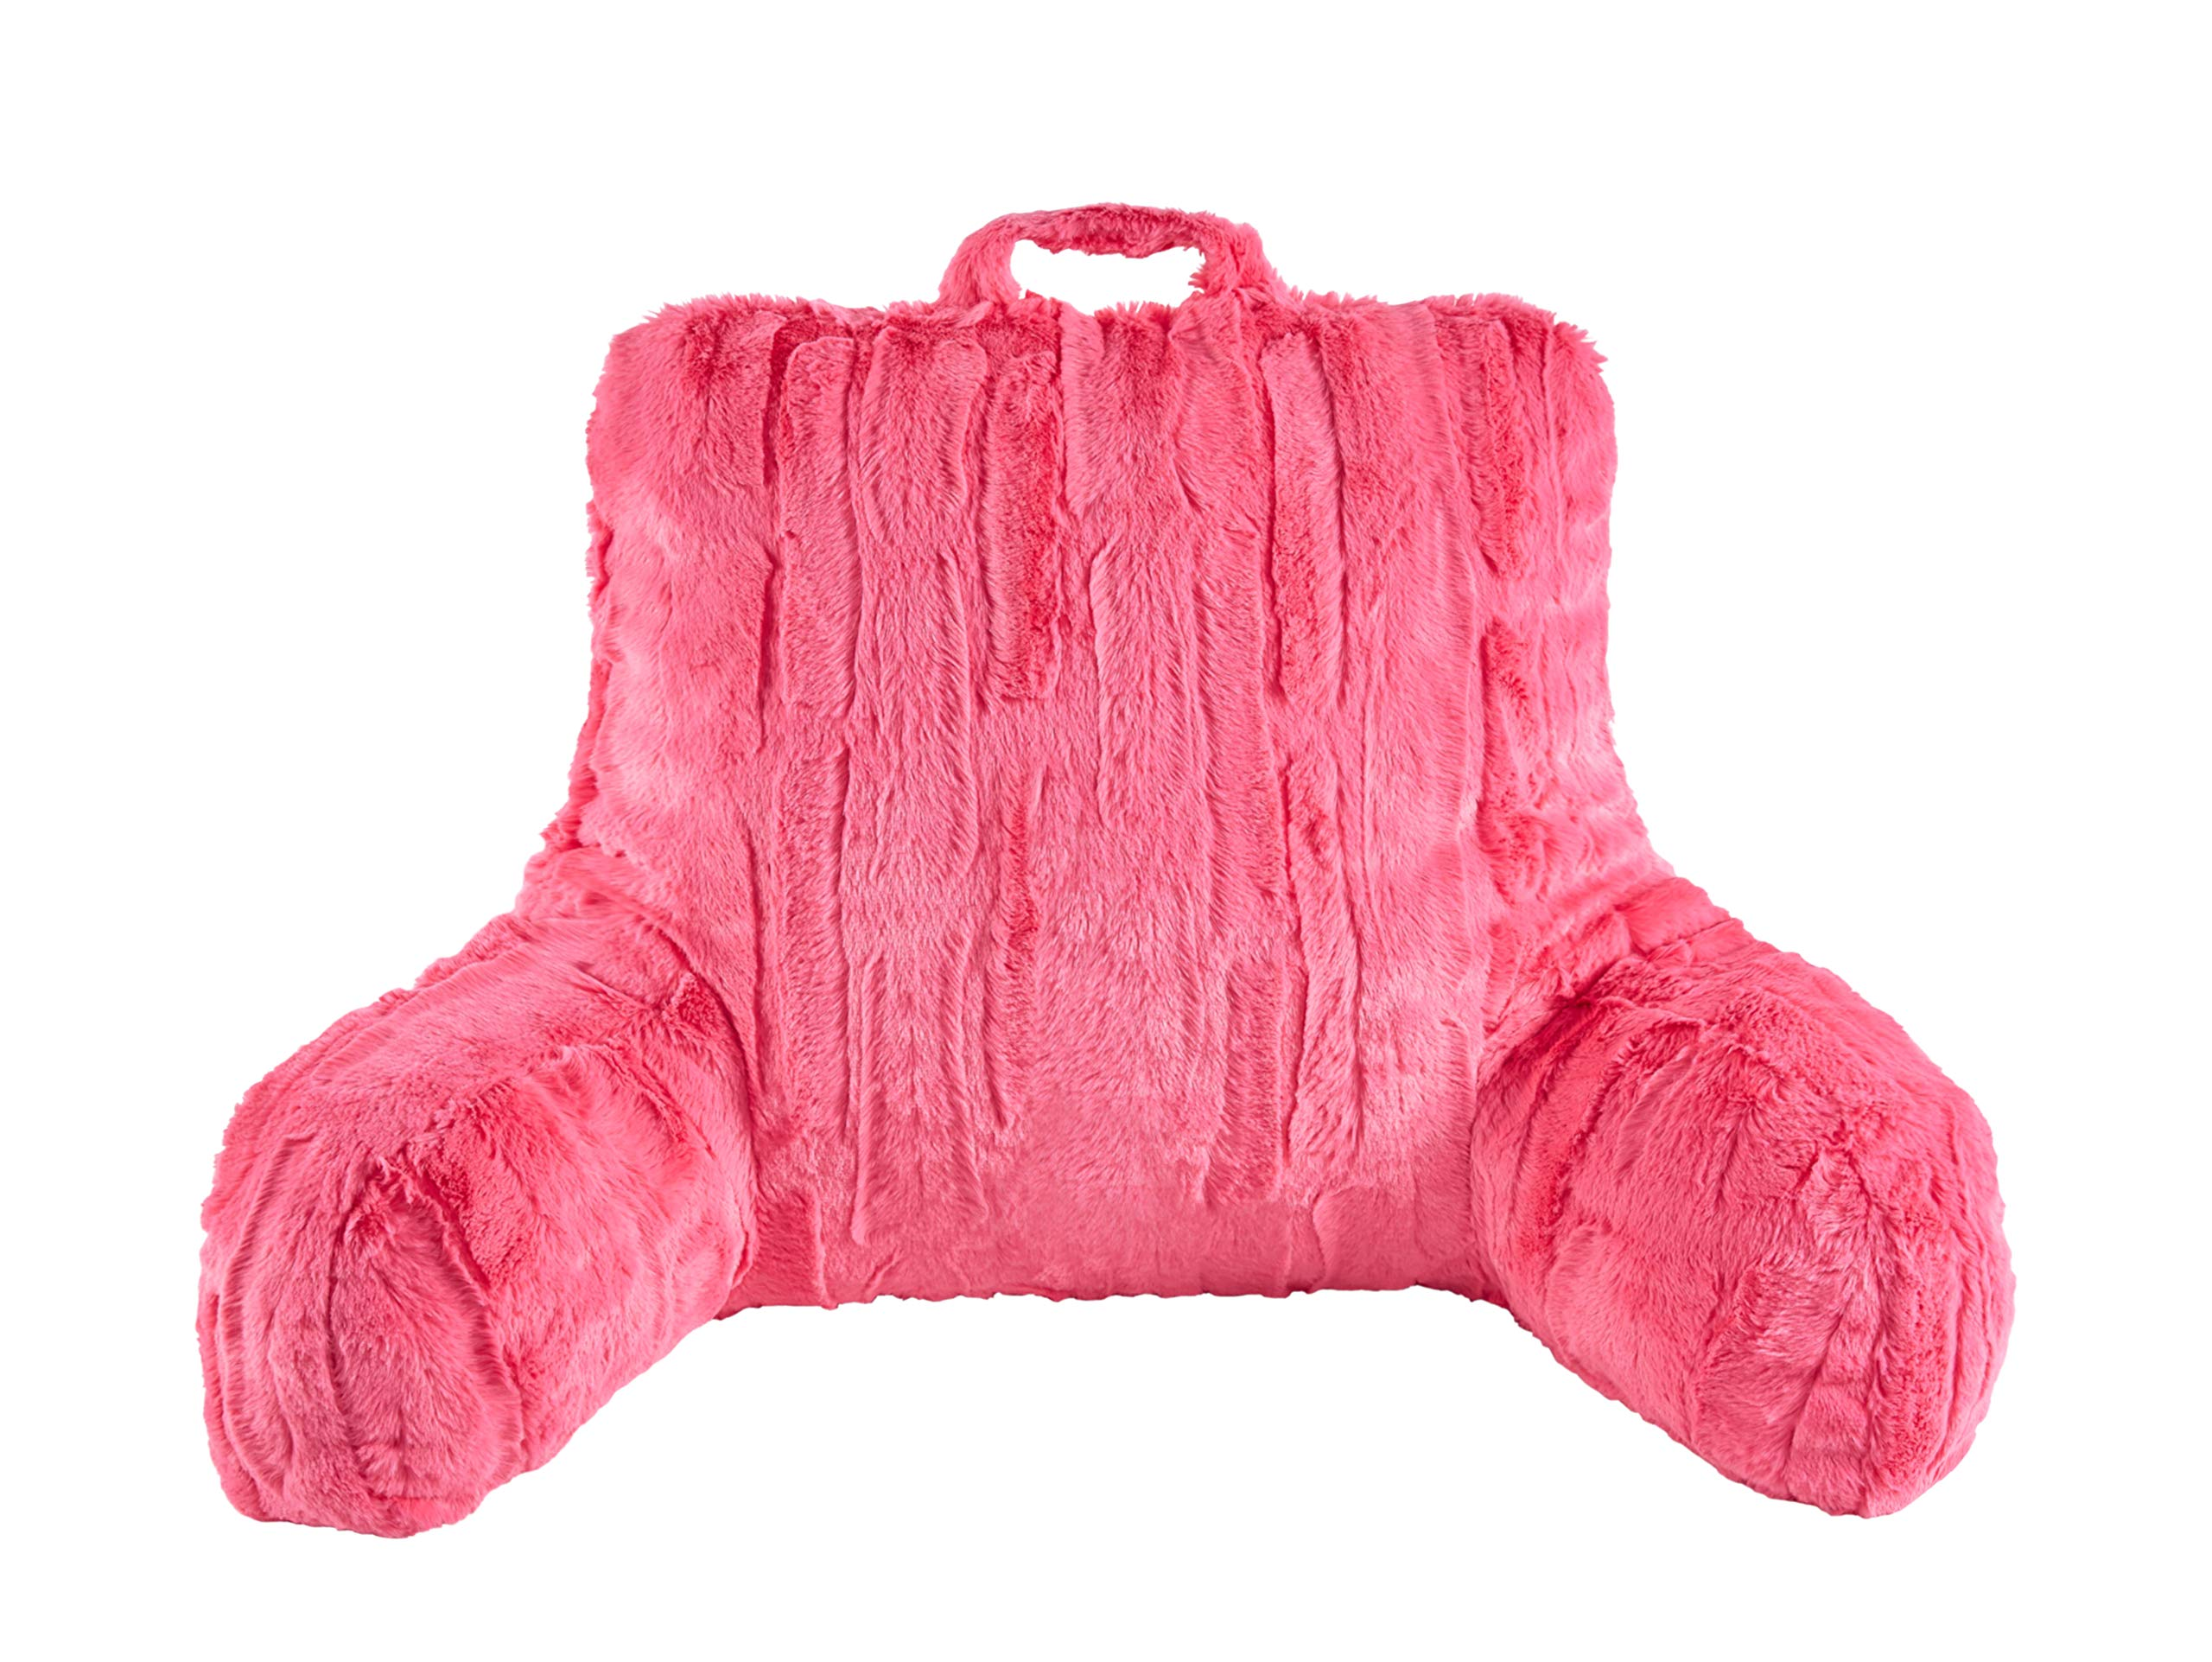 GoodGram Overfilled Ultra Plush & Cozy Hypoallergenic Poodle Bedrest Pillows for Kids & Adults - Assorted Colors (Rhonda Pink)